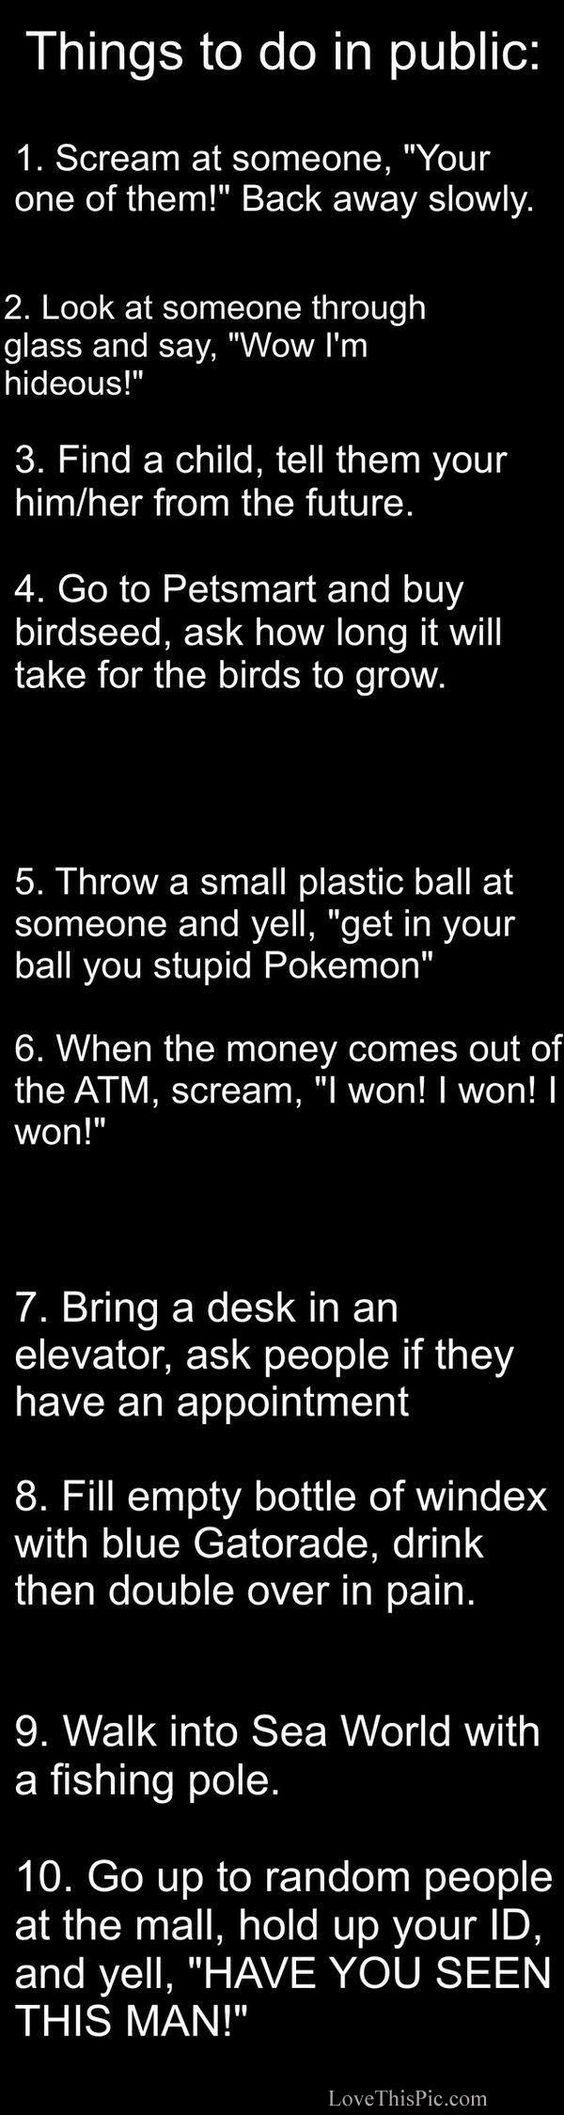 10 Hilarious Things To Do In Public funny jokes story funny quote funny quotes funny sayings joke humor stories funny jokes